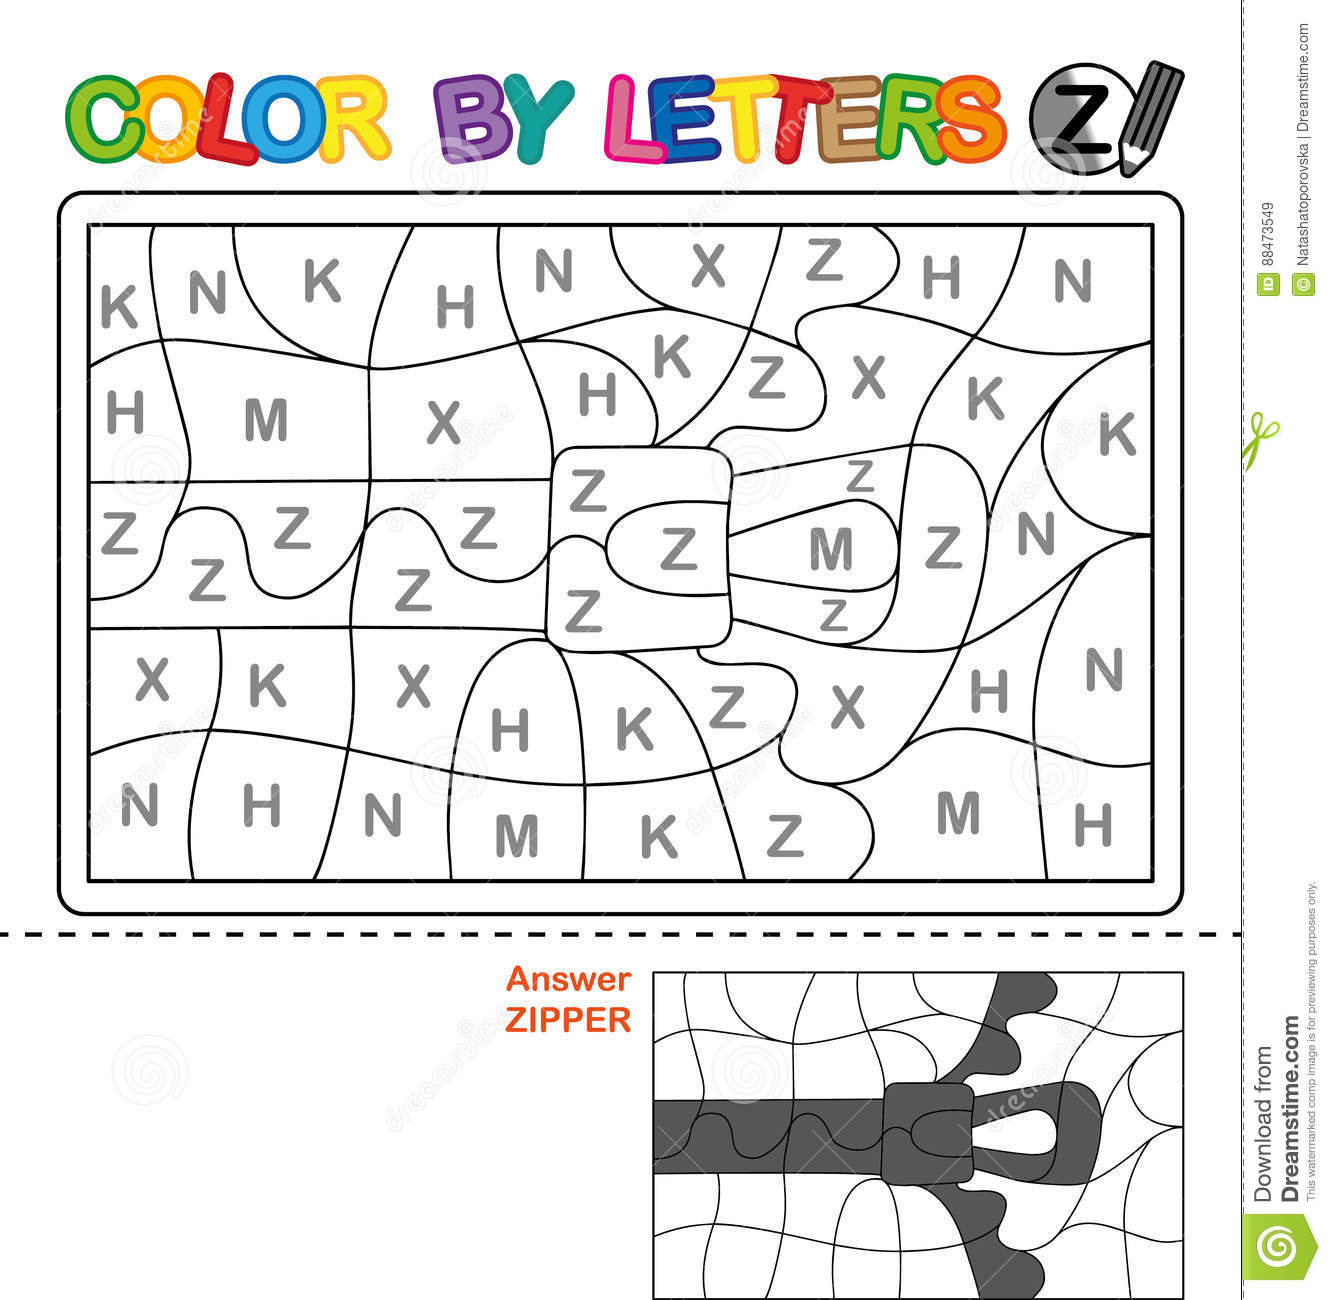 Color By Letter Puzzle For Children Zipper Stock Vector